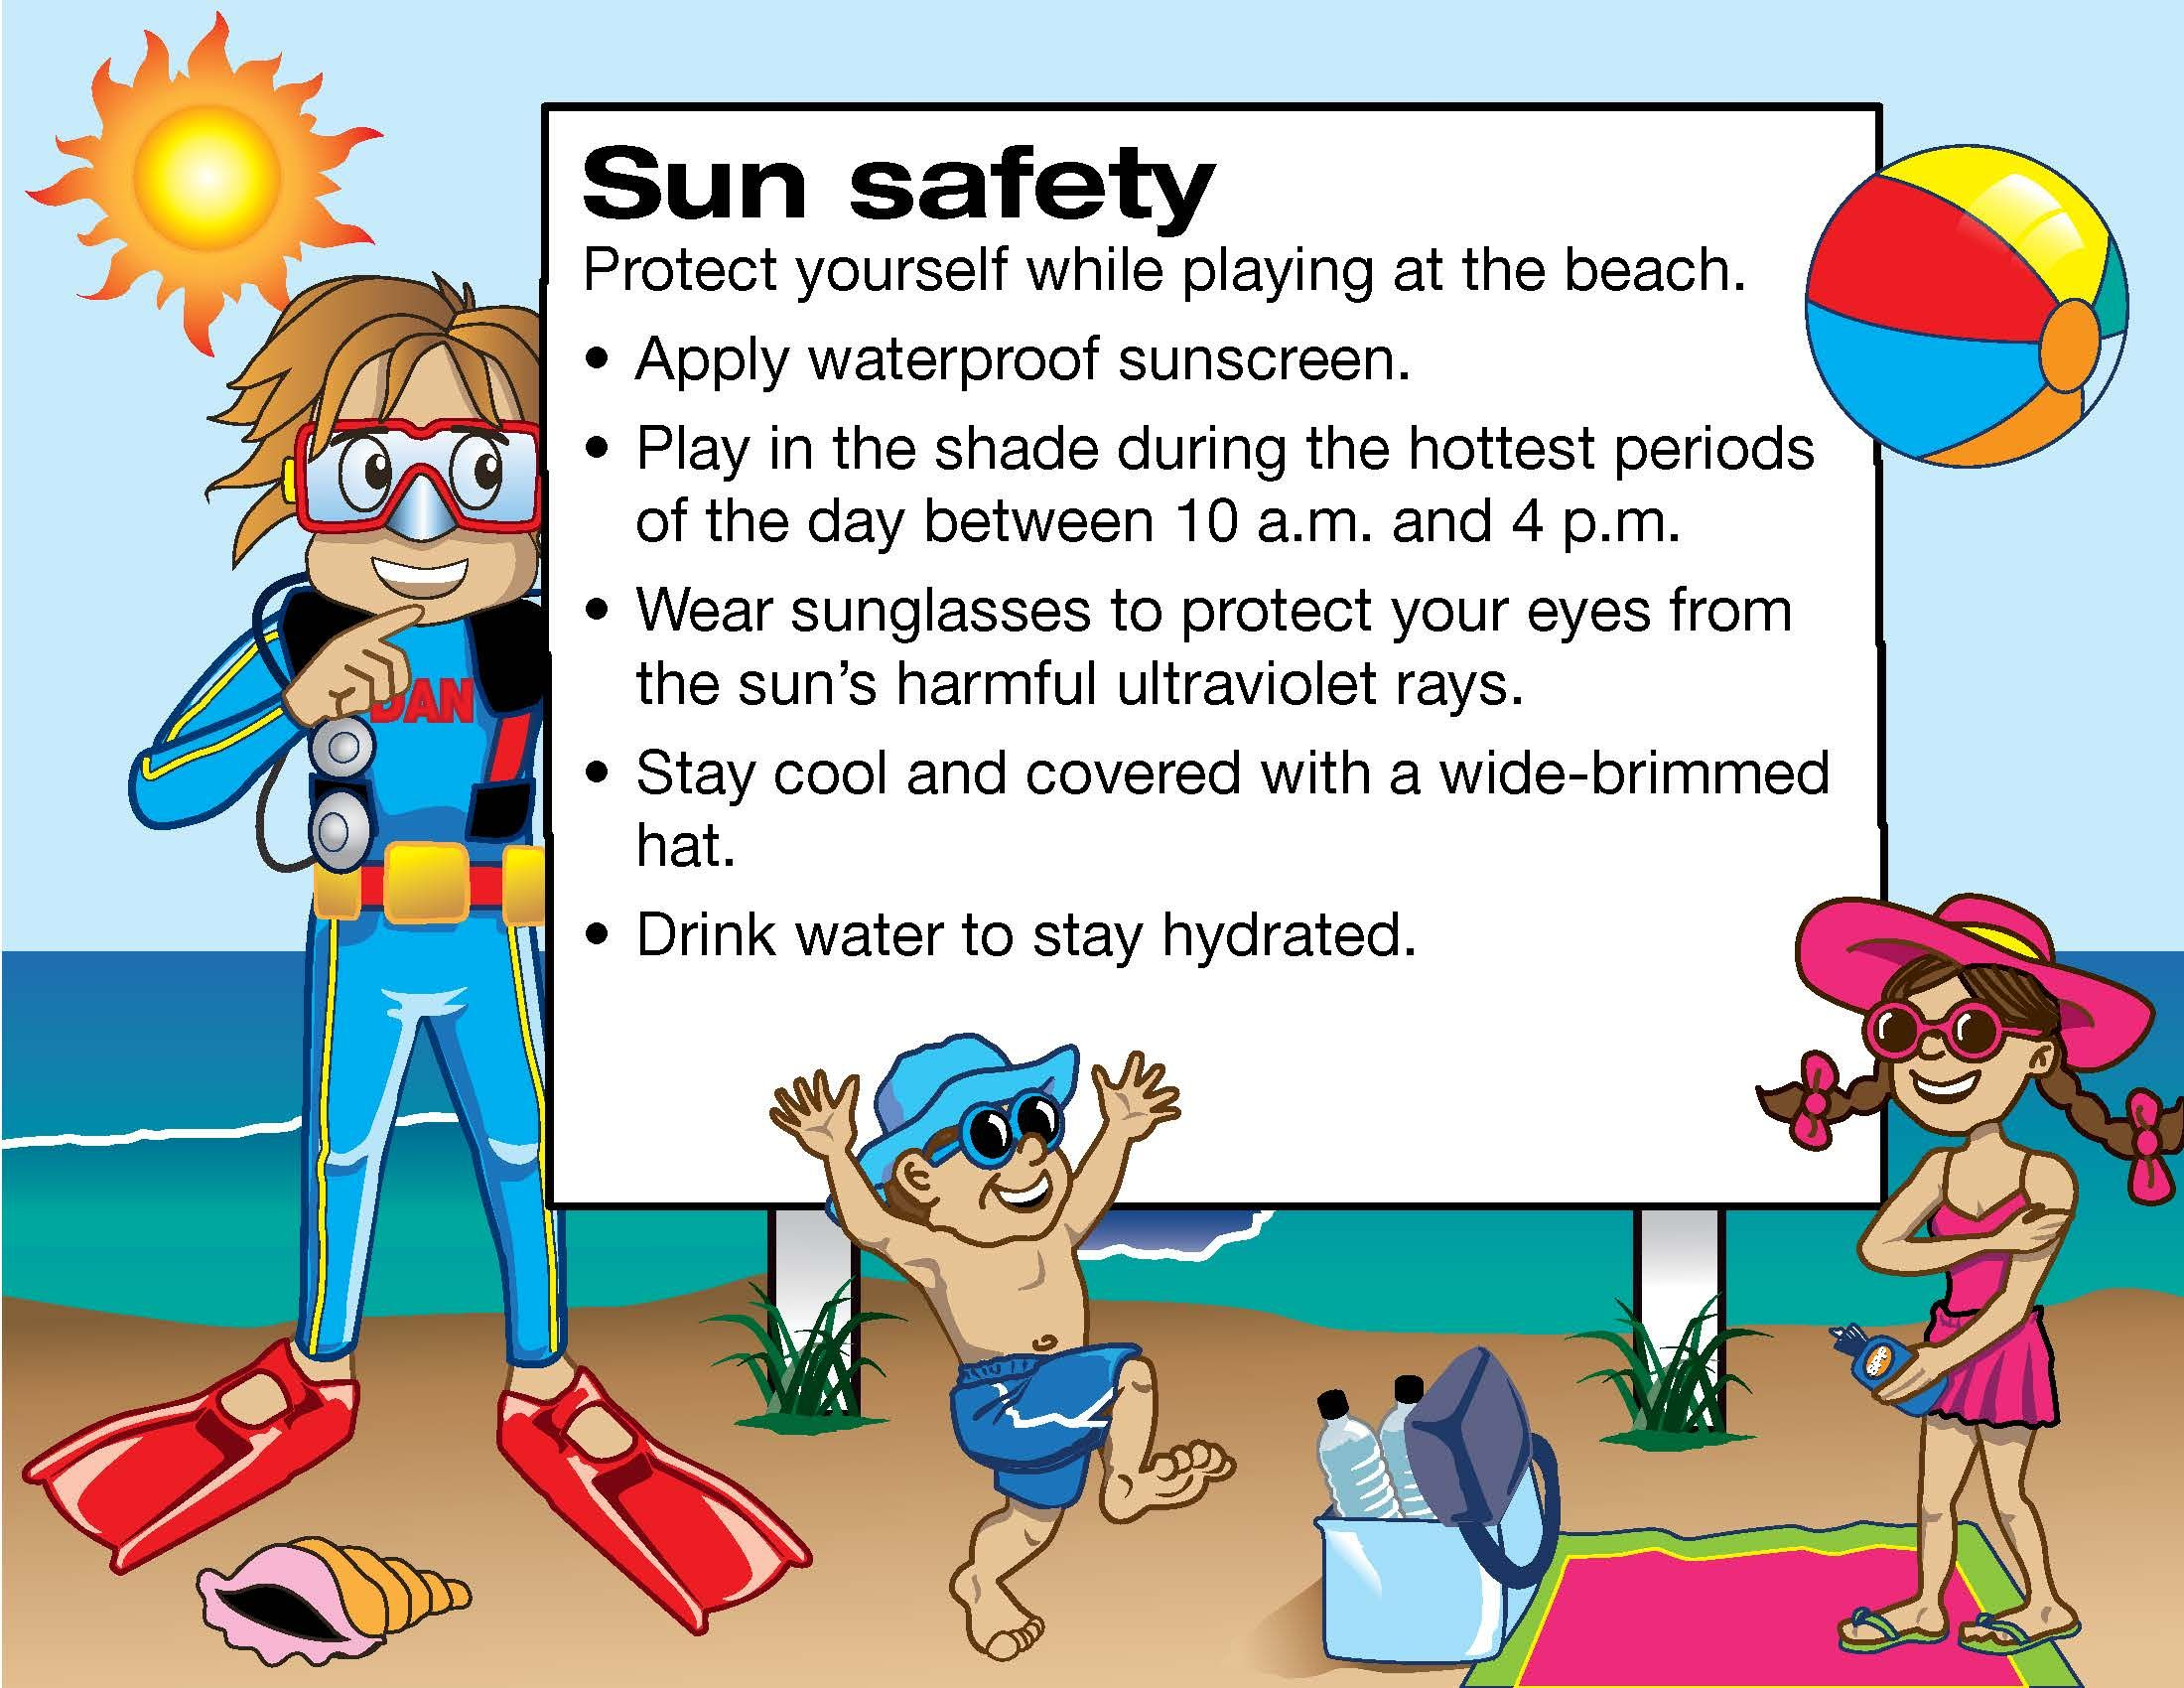 I Like This Pin Because It Awards Us A Lot About What We Need To Do Stay Sun Safe